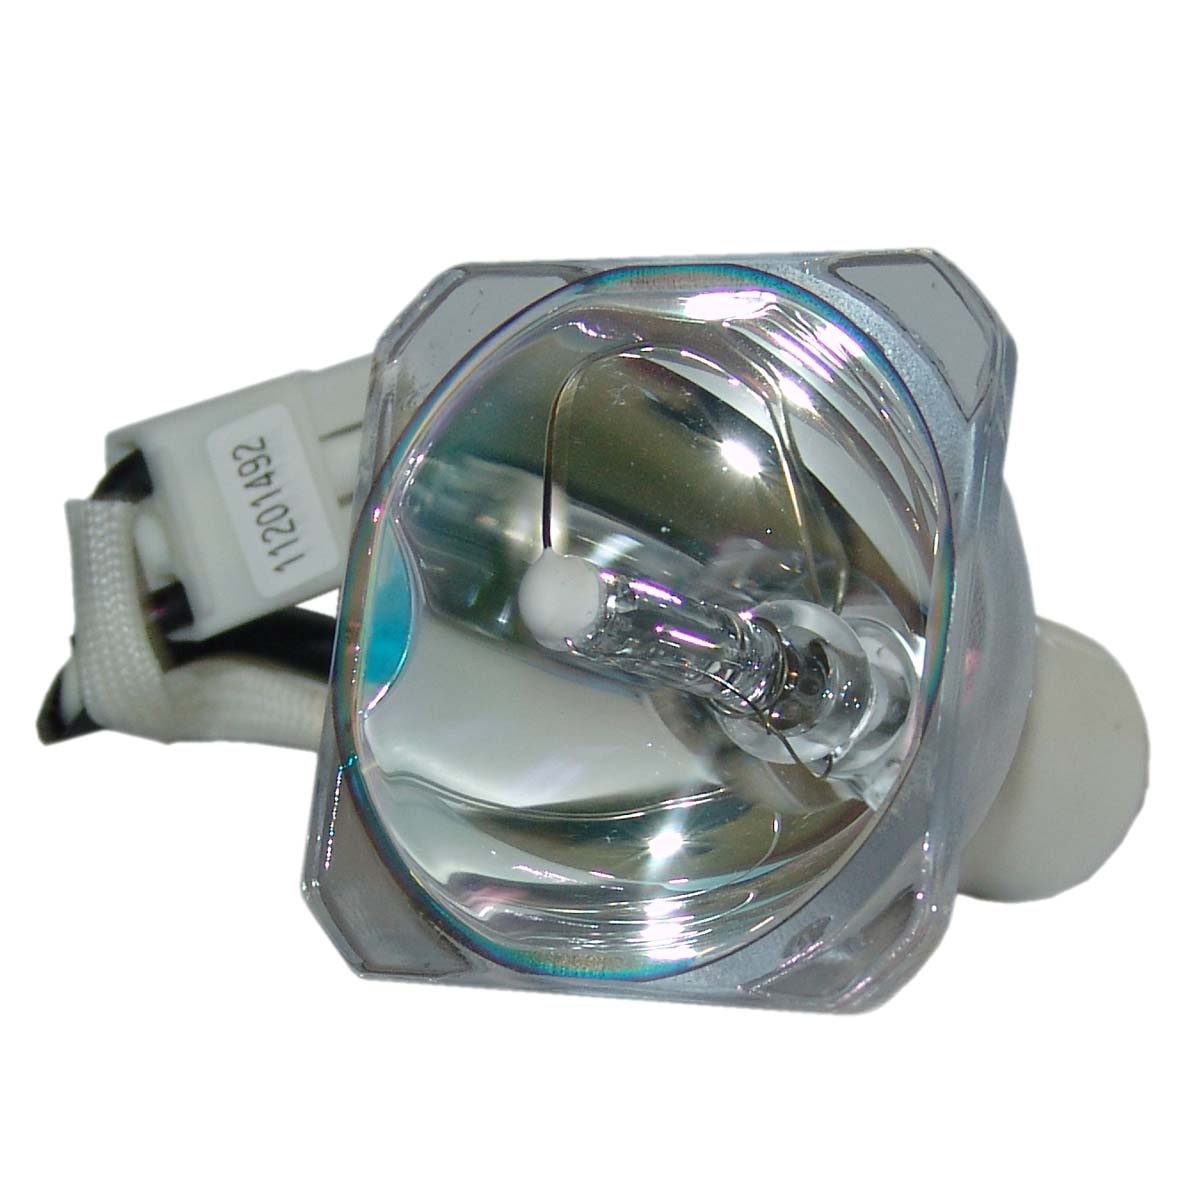 Compatible Bare bulb SHP137 5811116310-S FOR Vivitek D-535 D-536 D-537W D-538W Projector Lamp Bulbs without housing free shipping replacement lamp 5811116310 5811116310 s 5811116310 su 5811116320 s 5811116320 su for vivitek projector